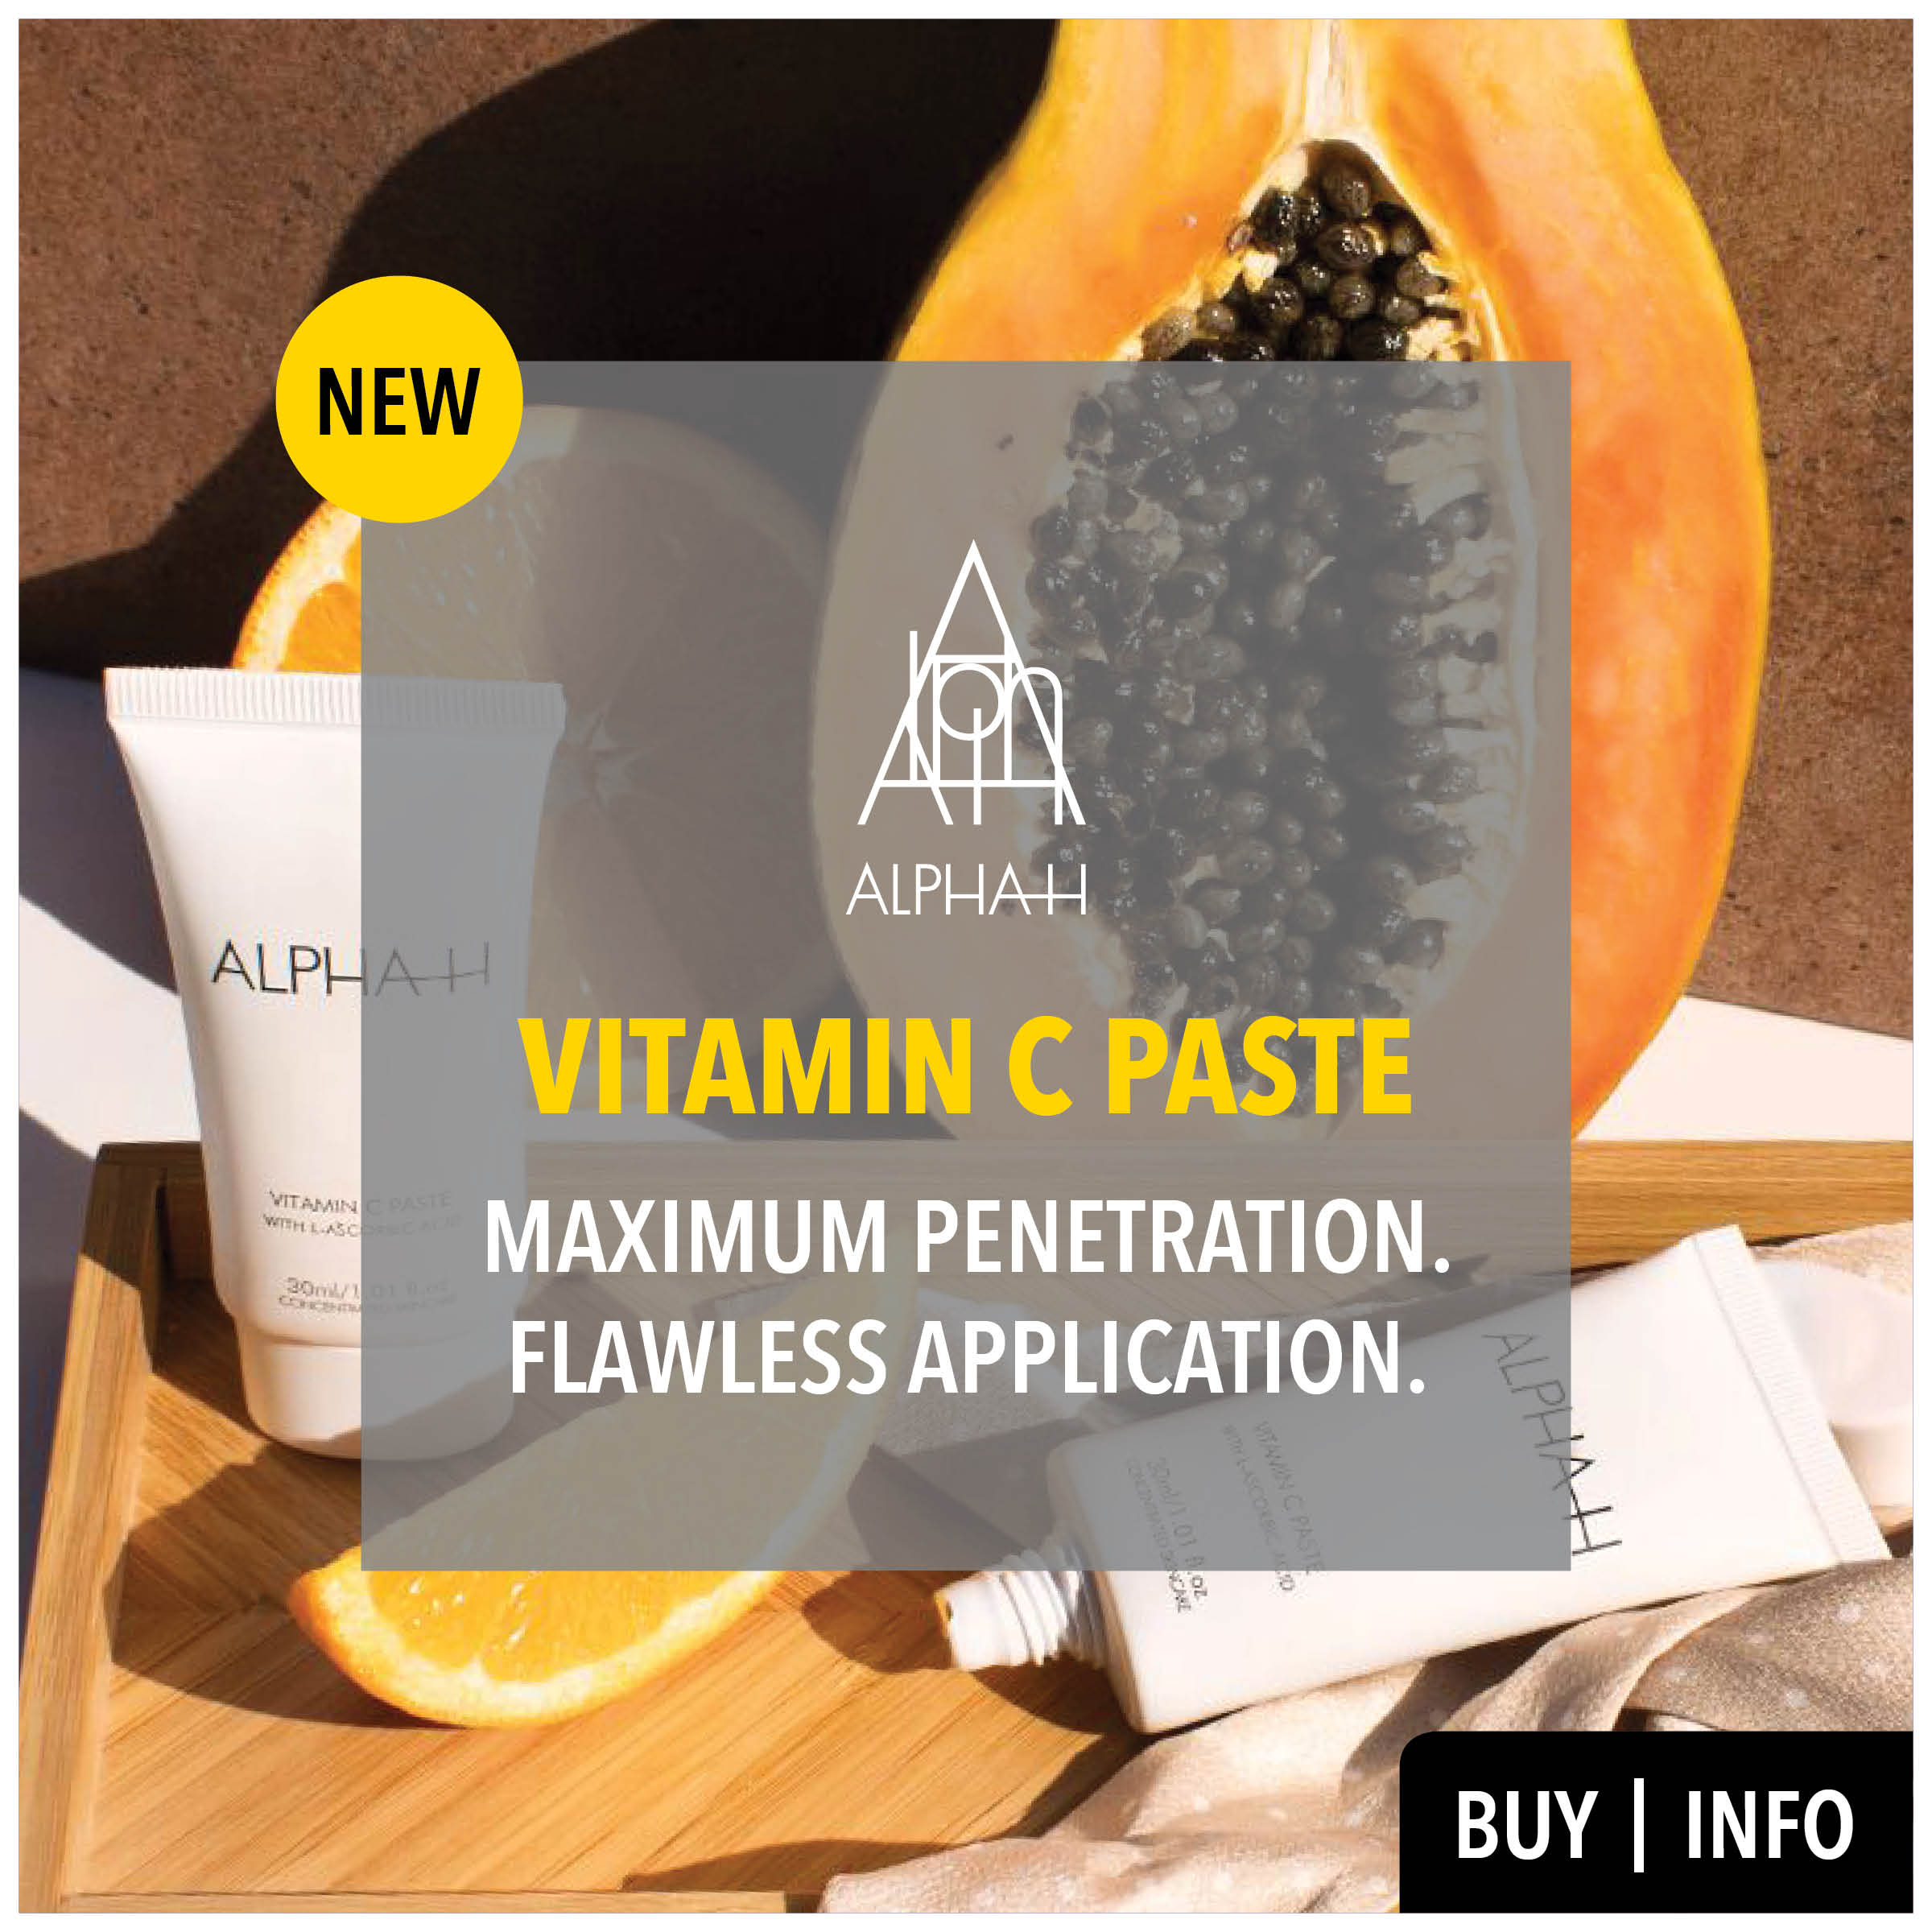 new alpha-h vitamin c paste from prodermal